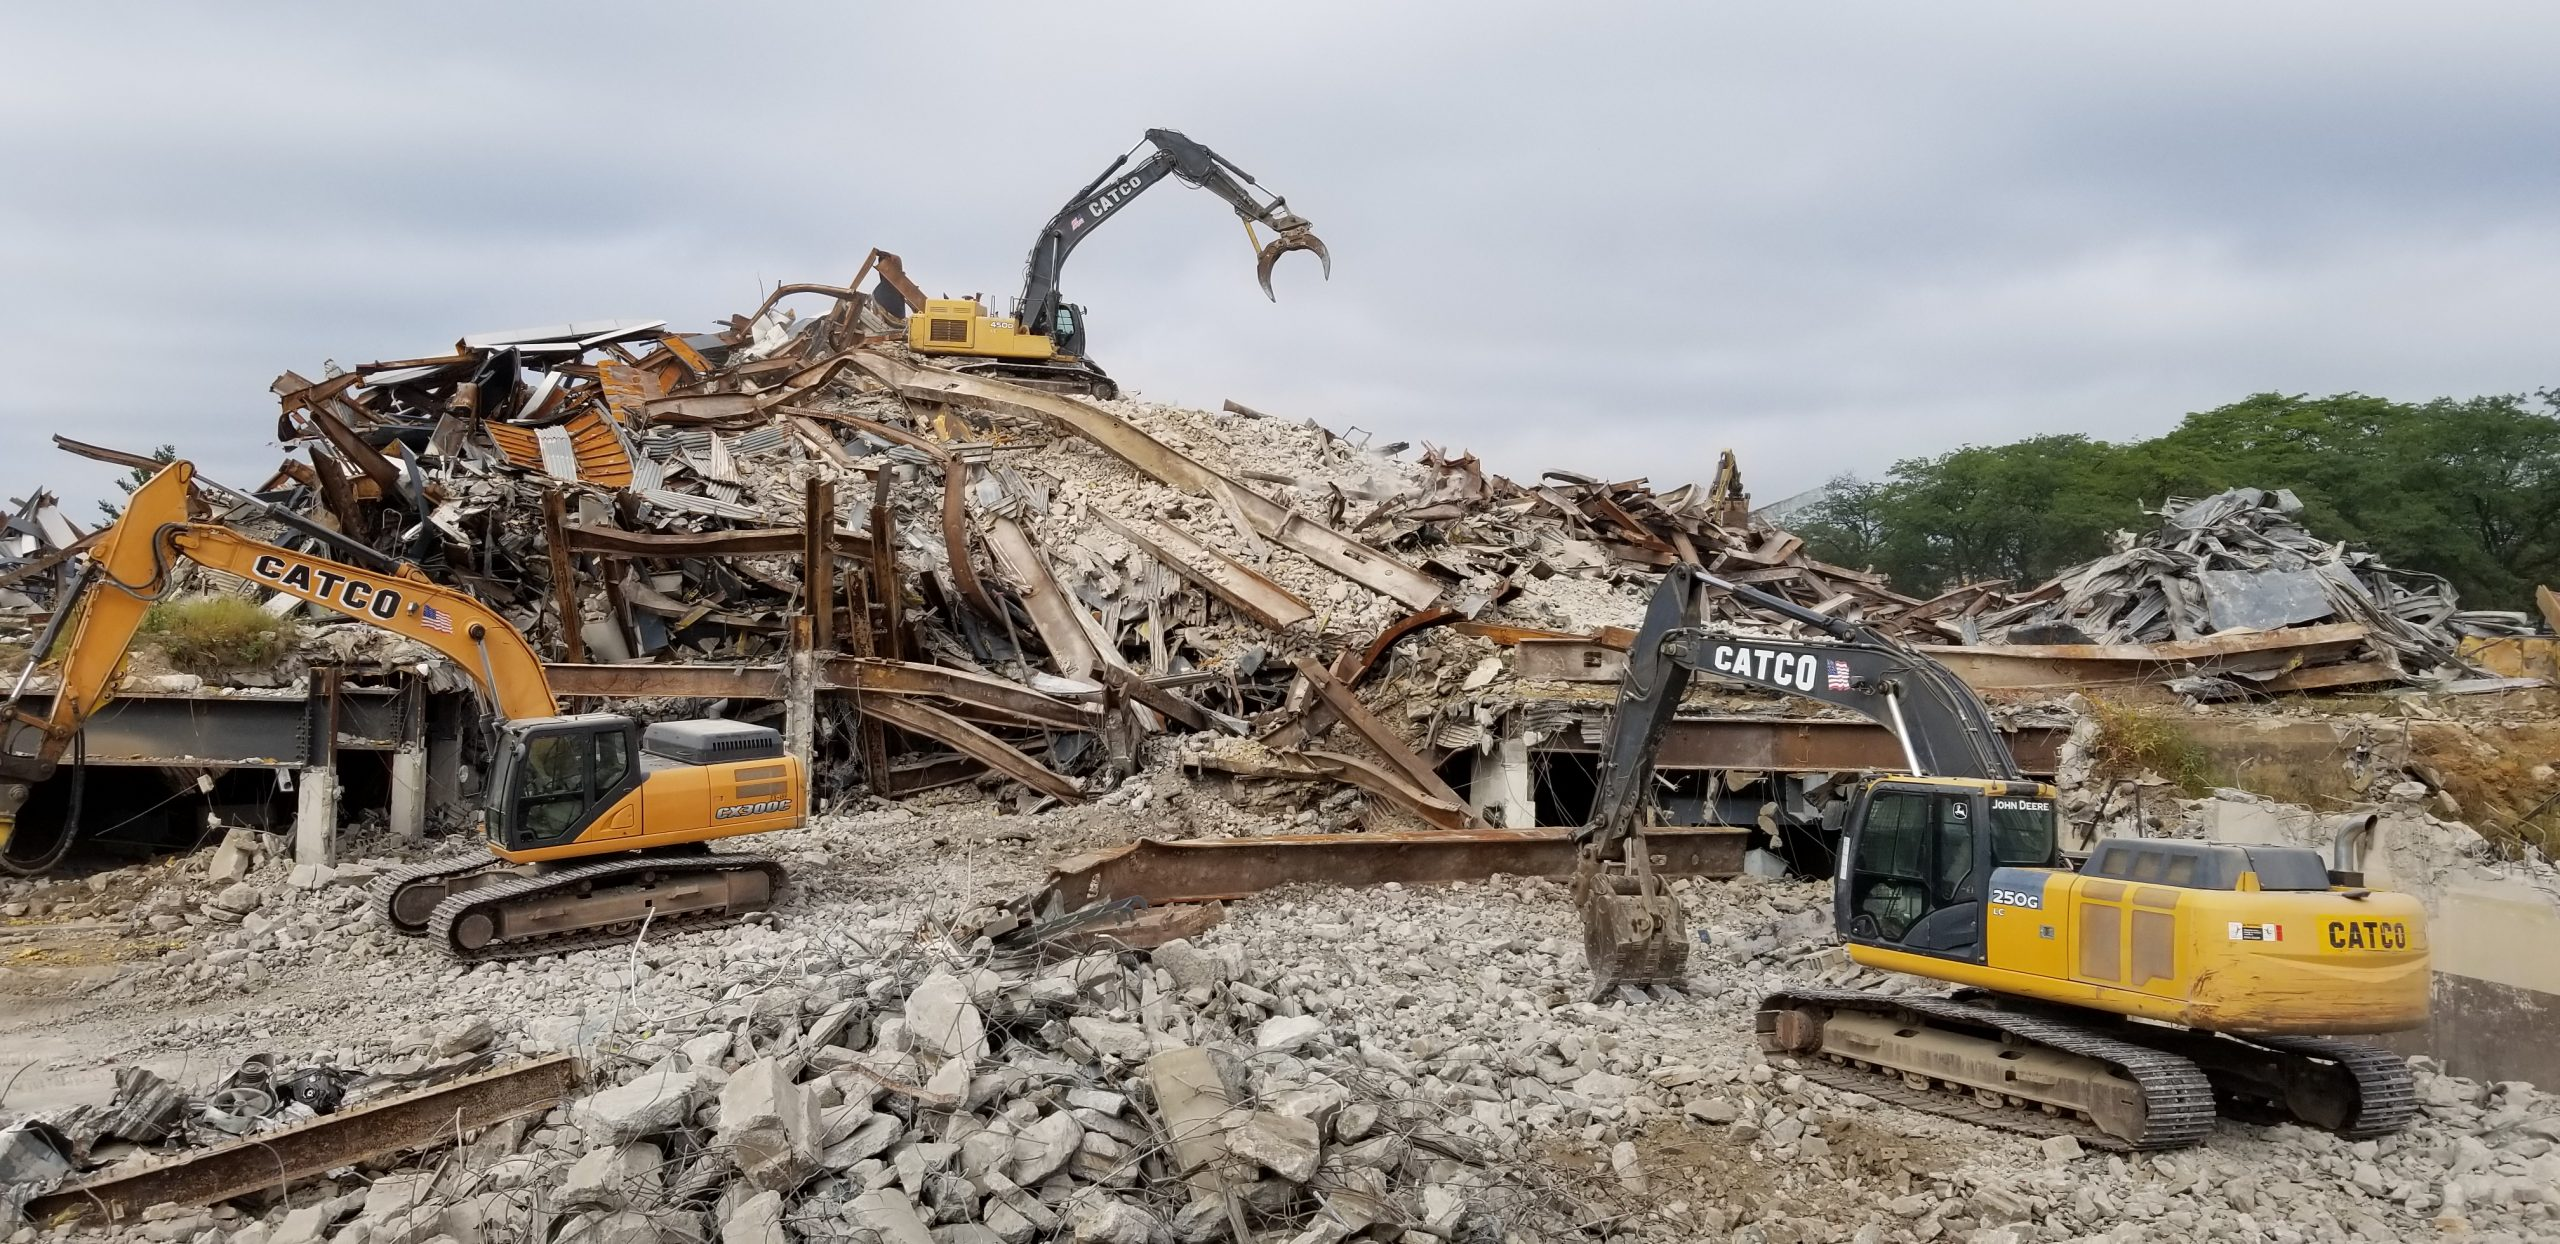 CATCO Demolition – Nationwide demolition and asbestos abatement